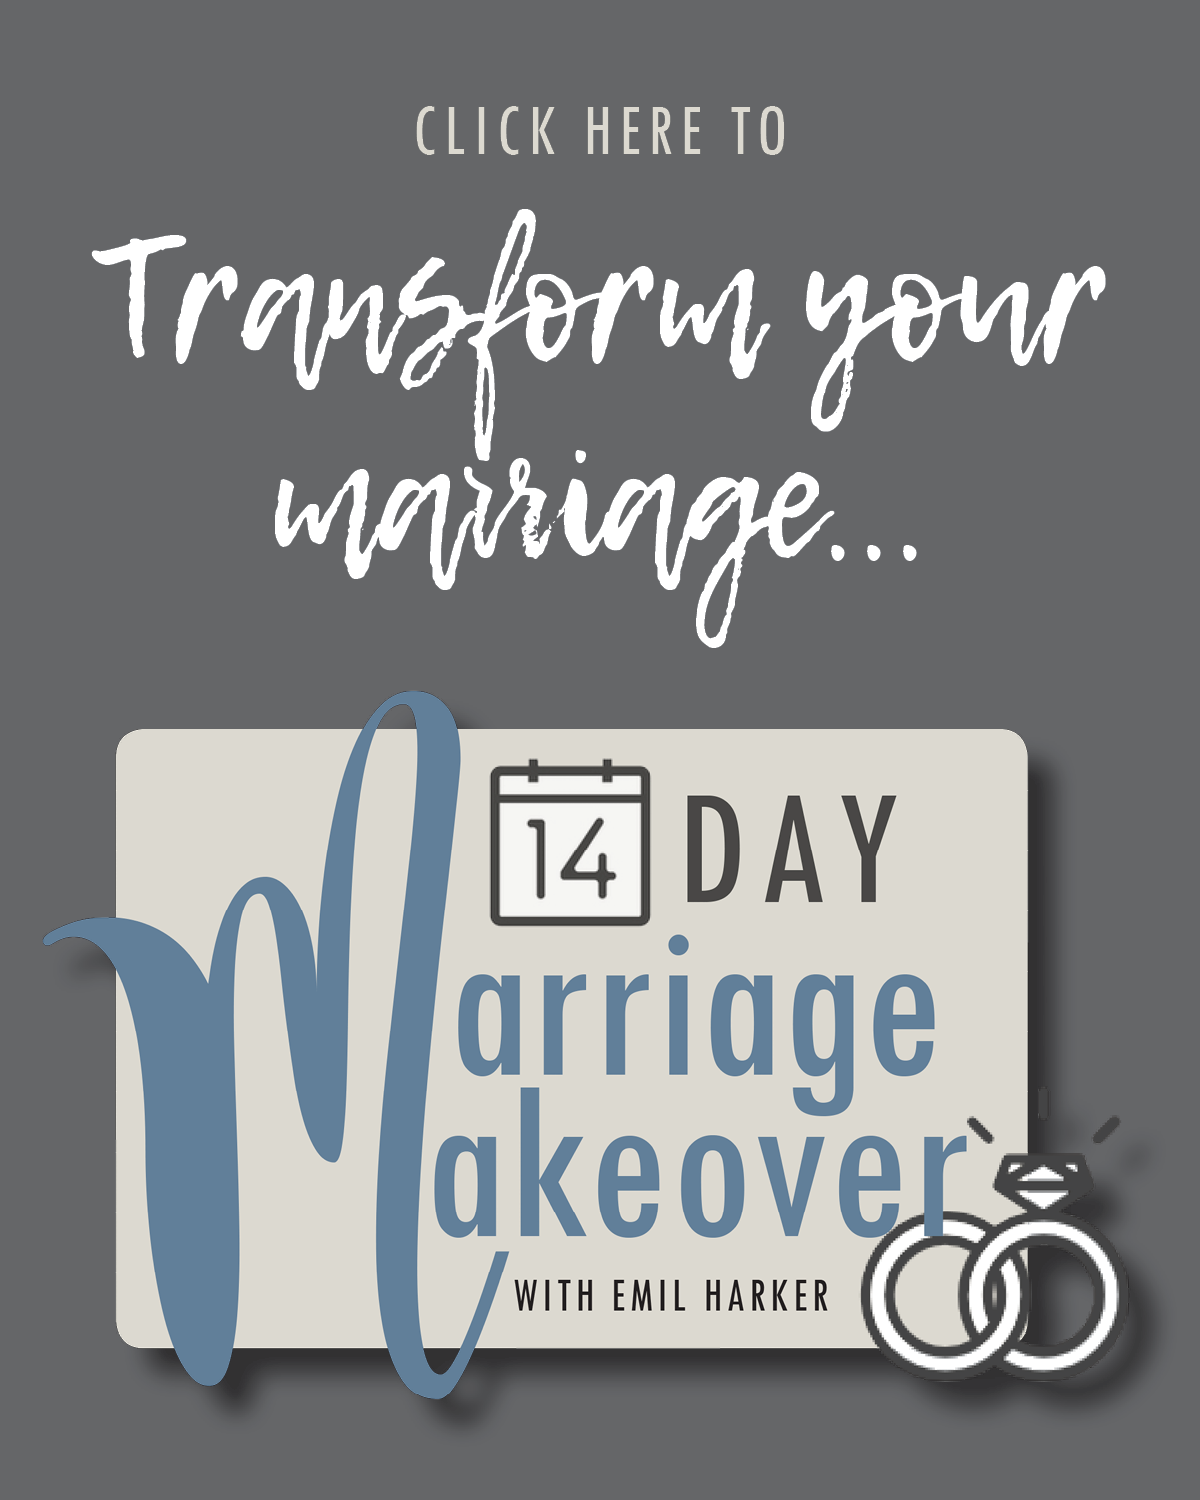 Transform your marriage with the 14 day Marriage Makeover